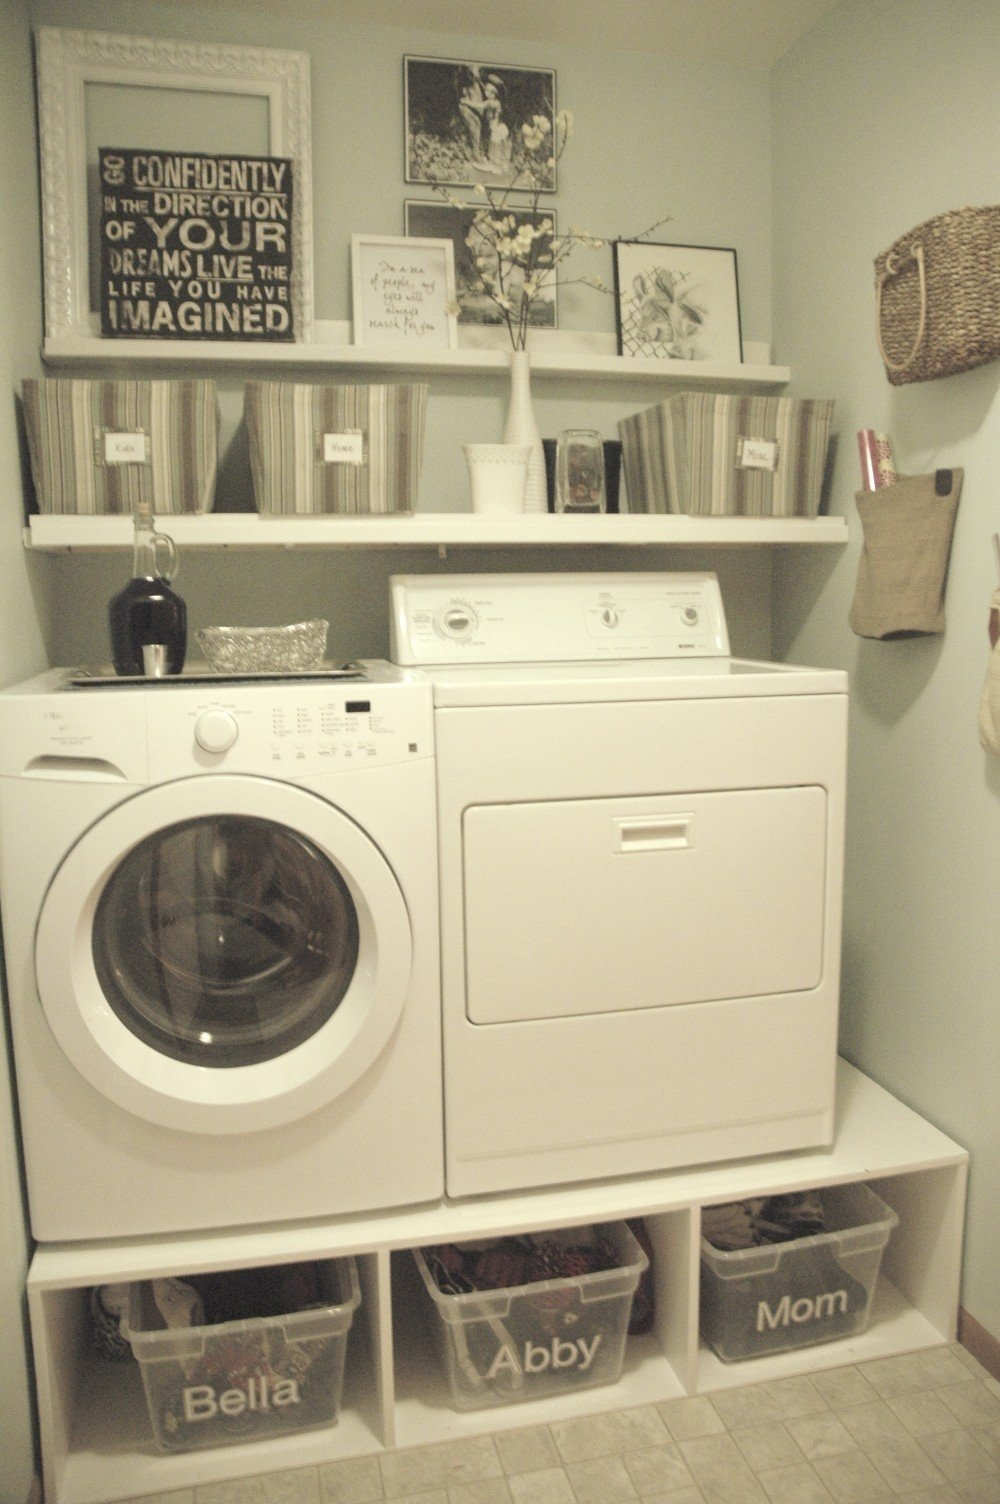 10 Best Laundry Room Ideas For Small Spaces decorating small laundry room ideas all in home decor ideas 2021